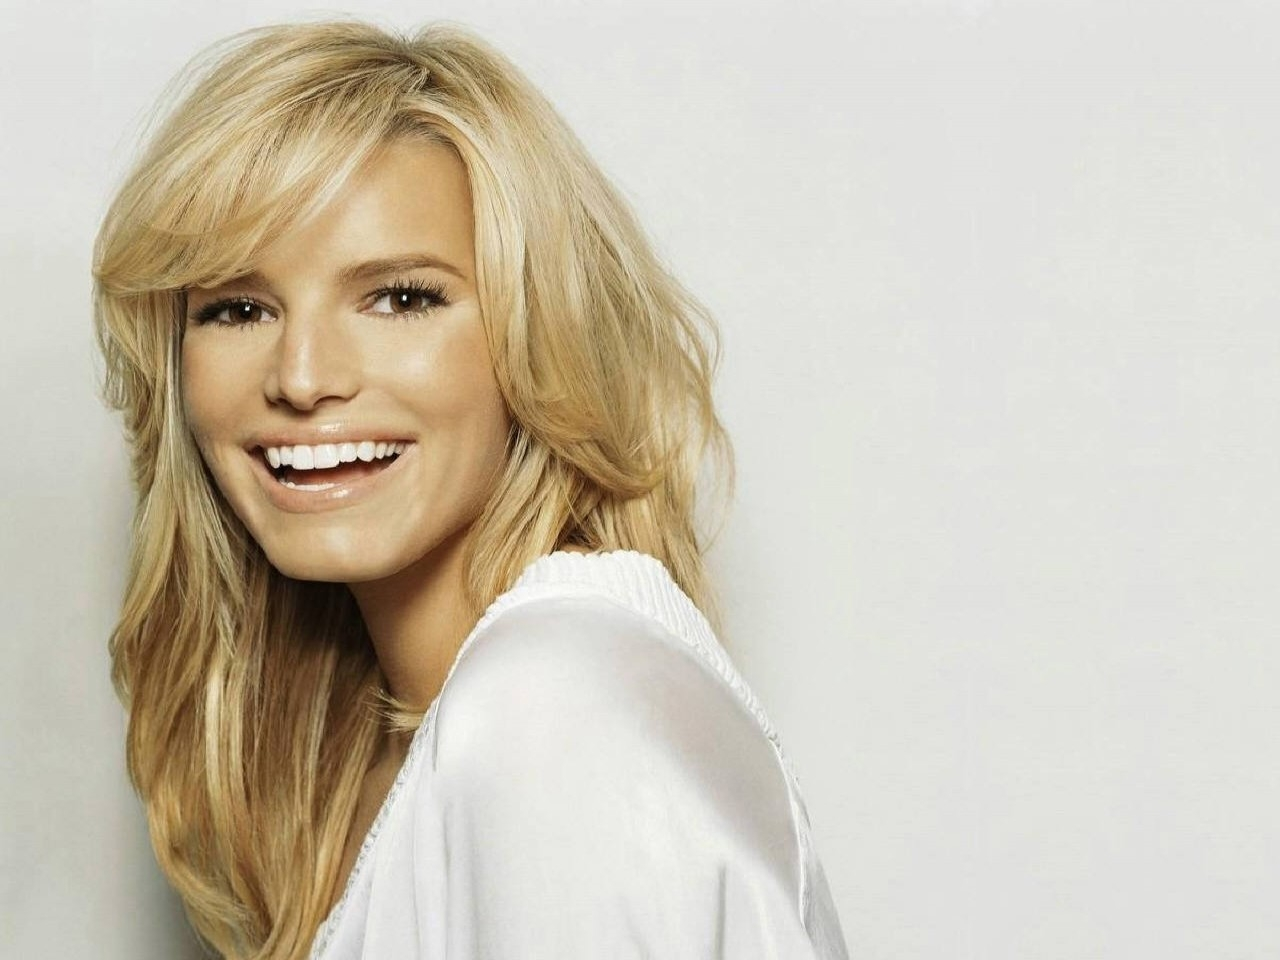 Wallpaper dell'attrice e cantante Jessica Simpson